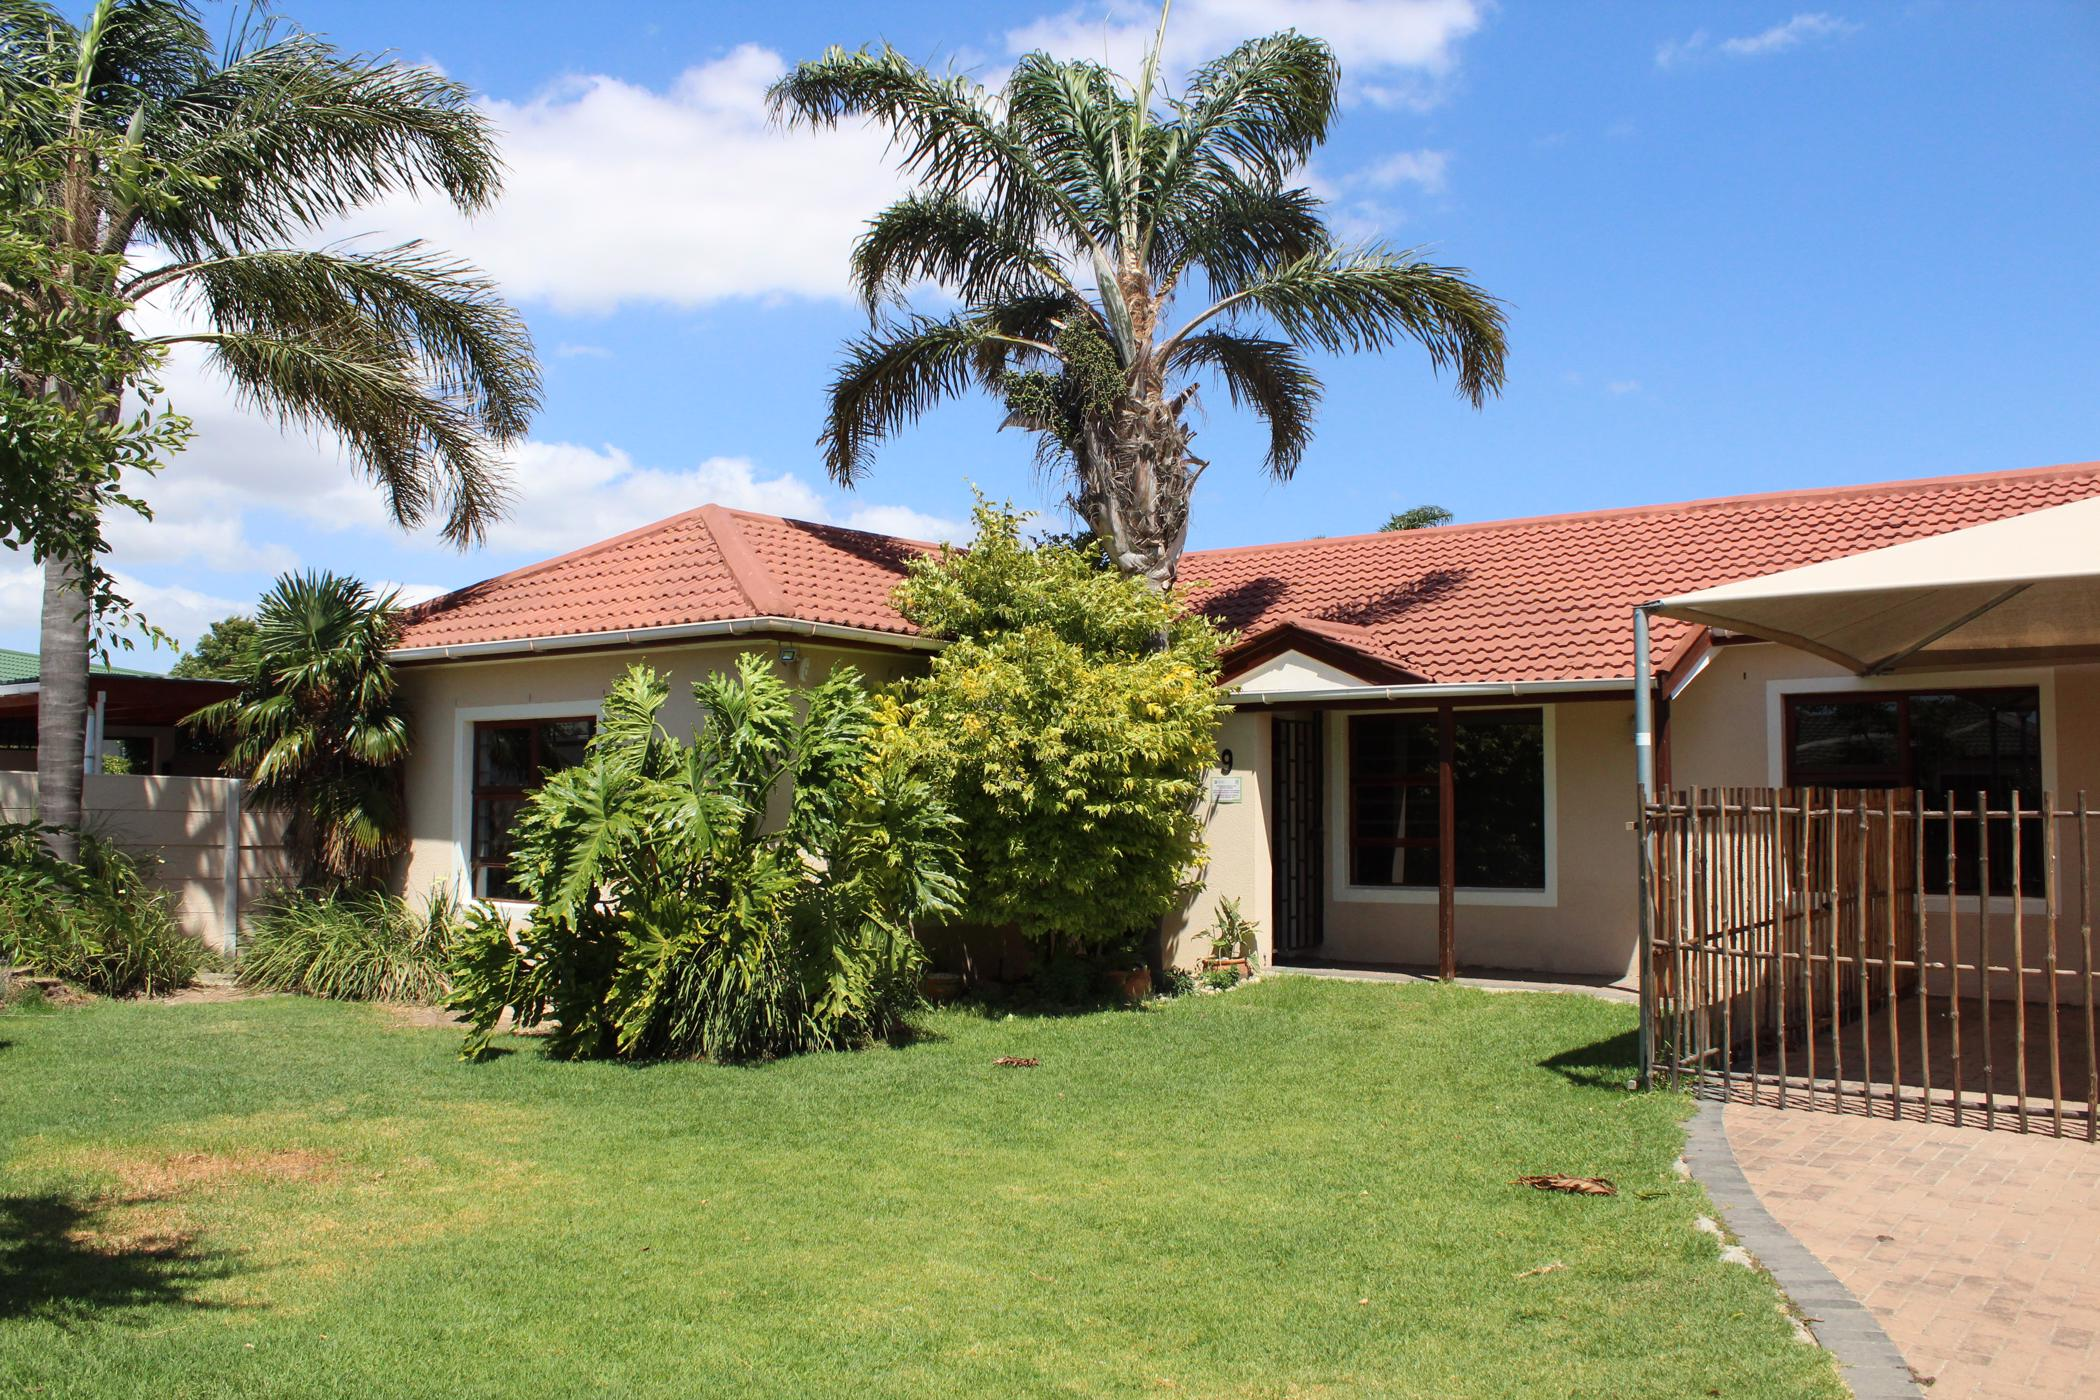 https://listing.pamgolding.co.za/images/properties/201912/1405800/H/1405800_H_43.jpg